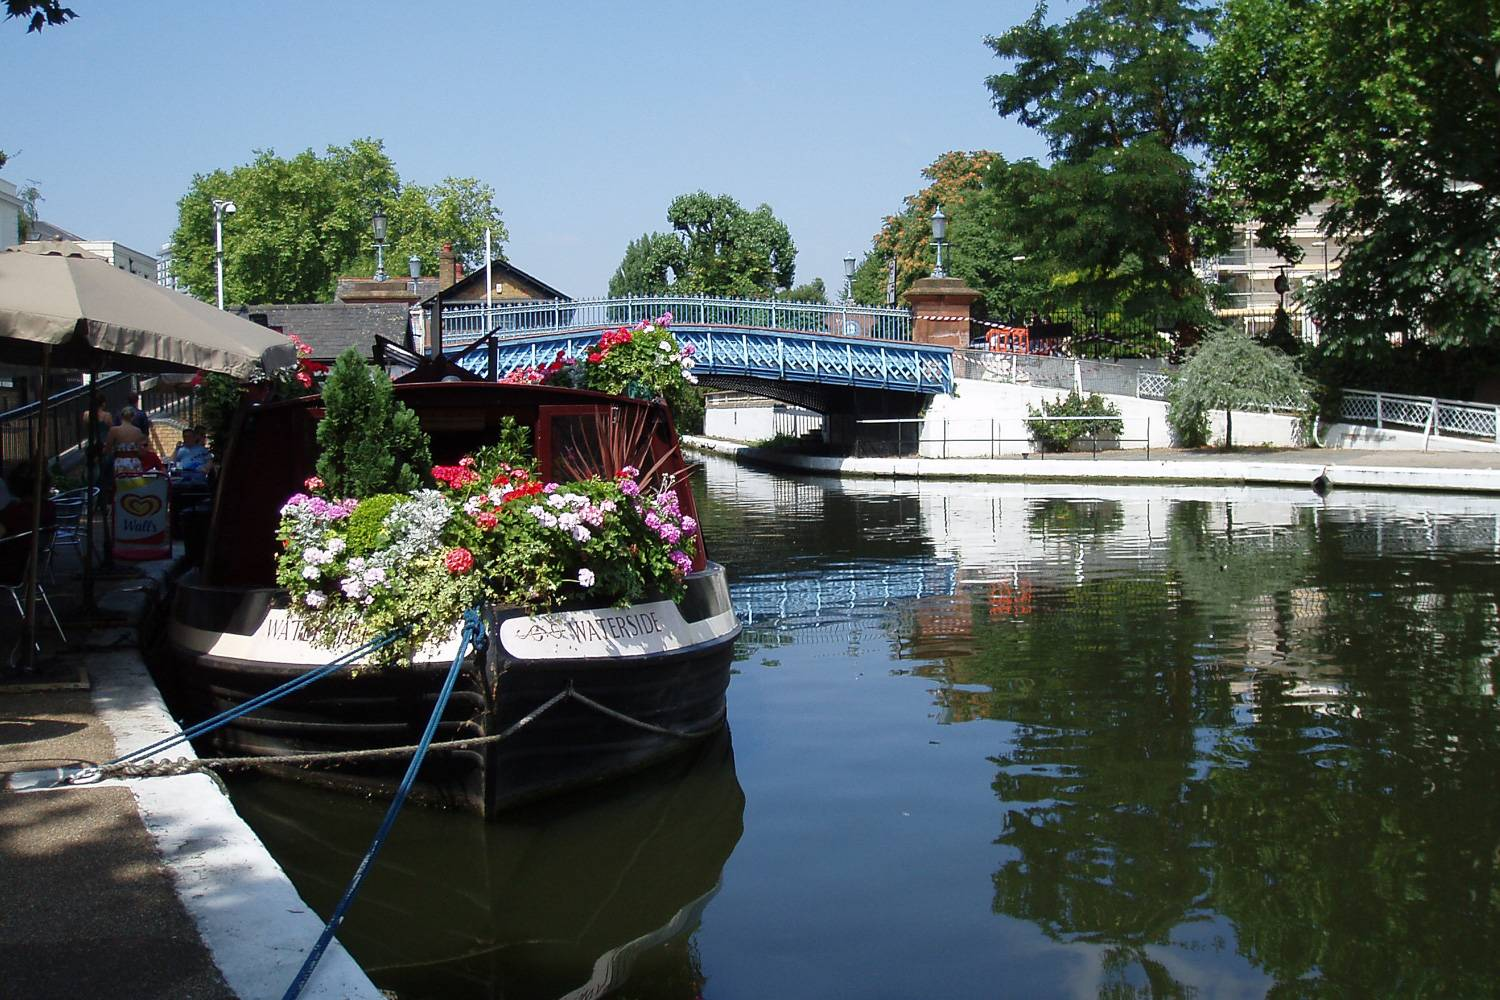 Image of a house boat with flowers docked on Regent's Canal in London.